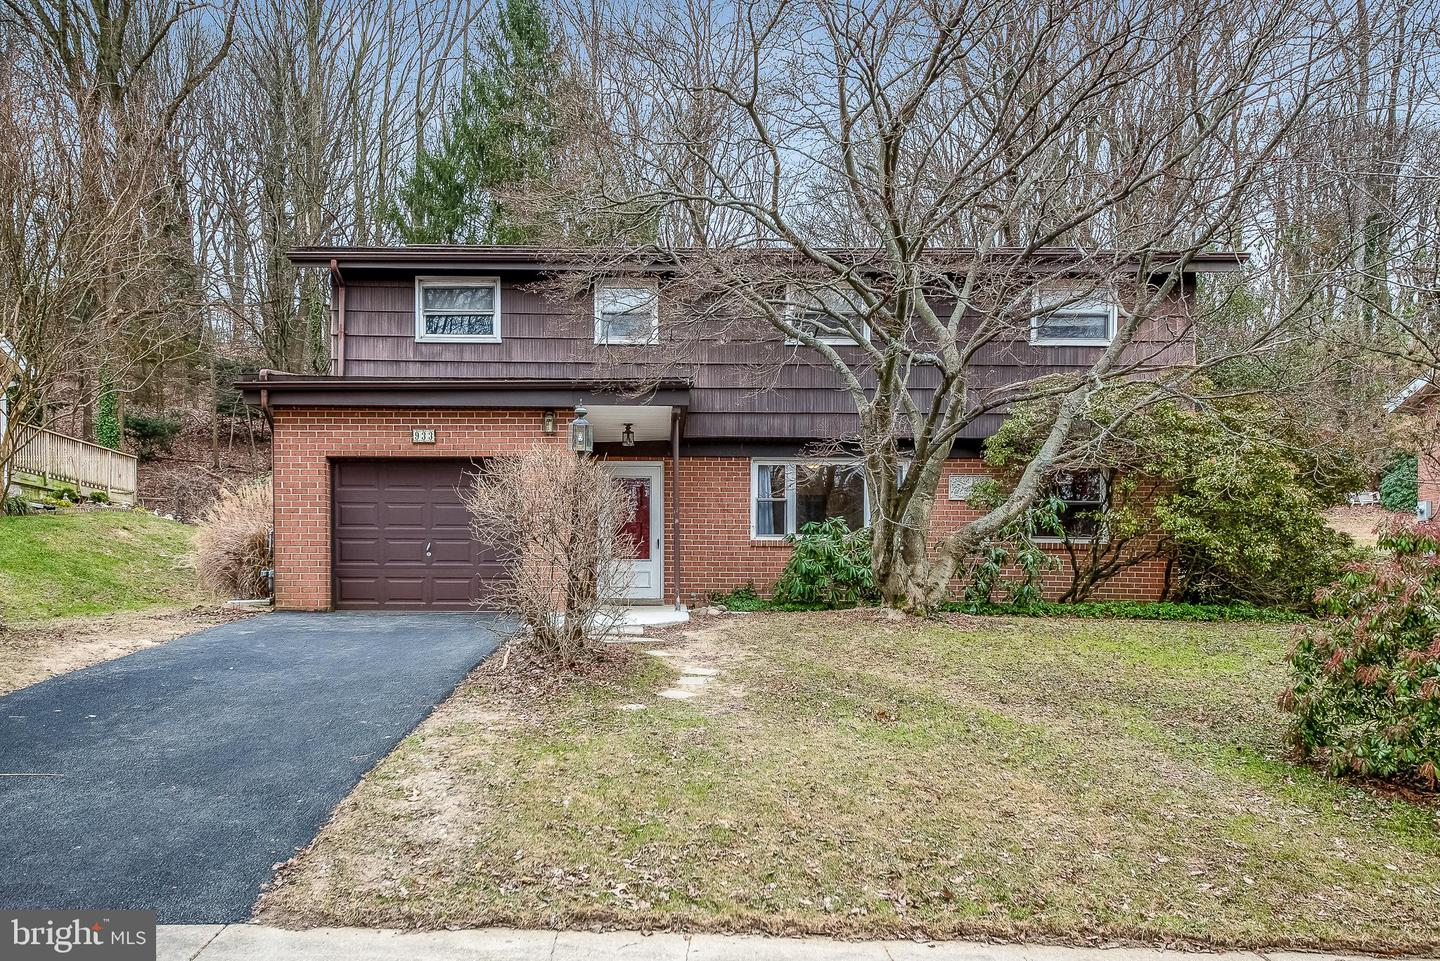 933 CROMWELL BRIDGE RD, TOWSON, Maryland 21286, 4 Bedrooms Bedrooms, ,4 BathroomsBathrooms,Single Family,For Sale,933 CROMWELL BRIDGE RD,MDBC522986